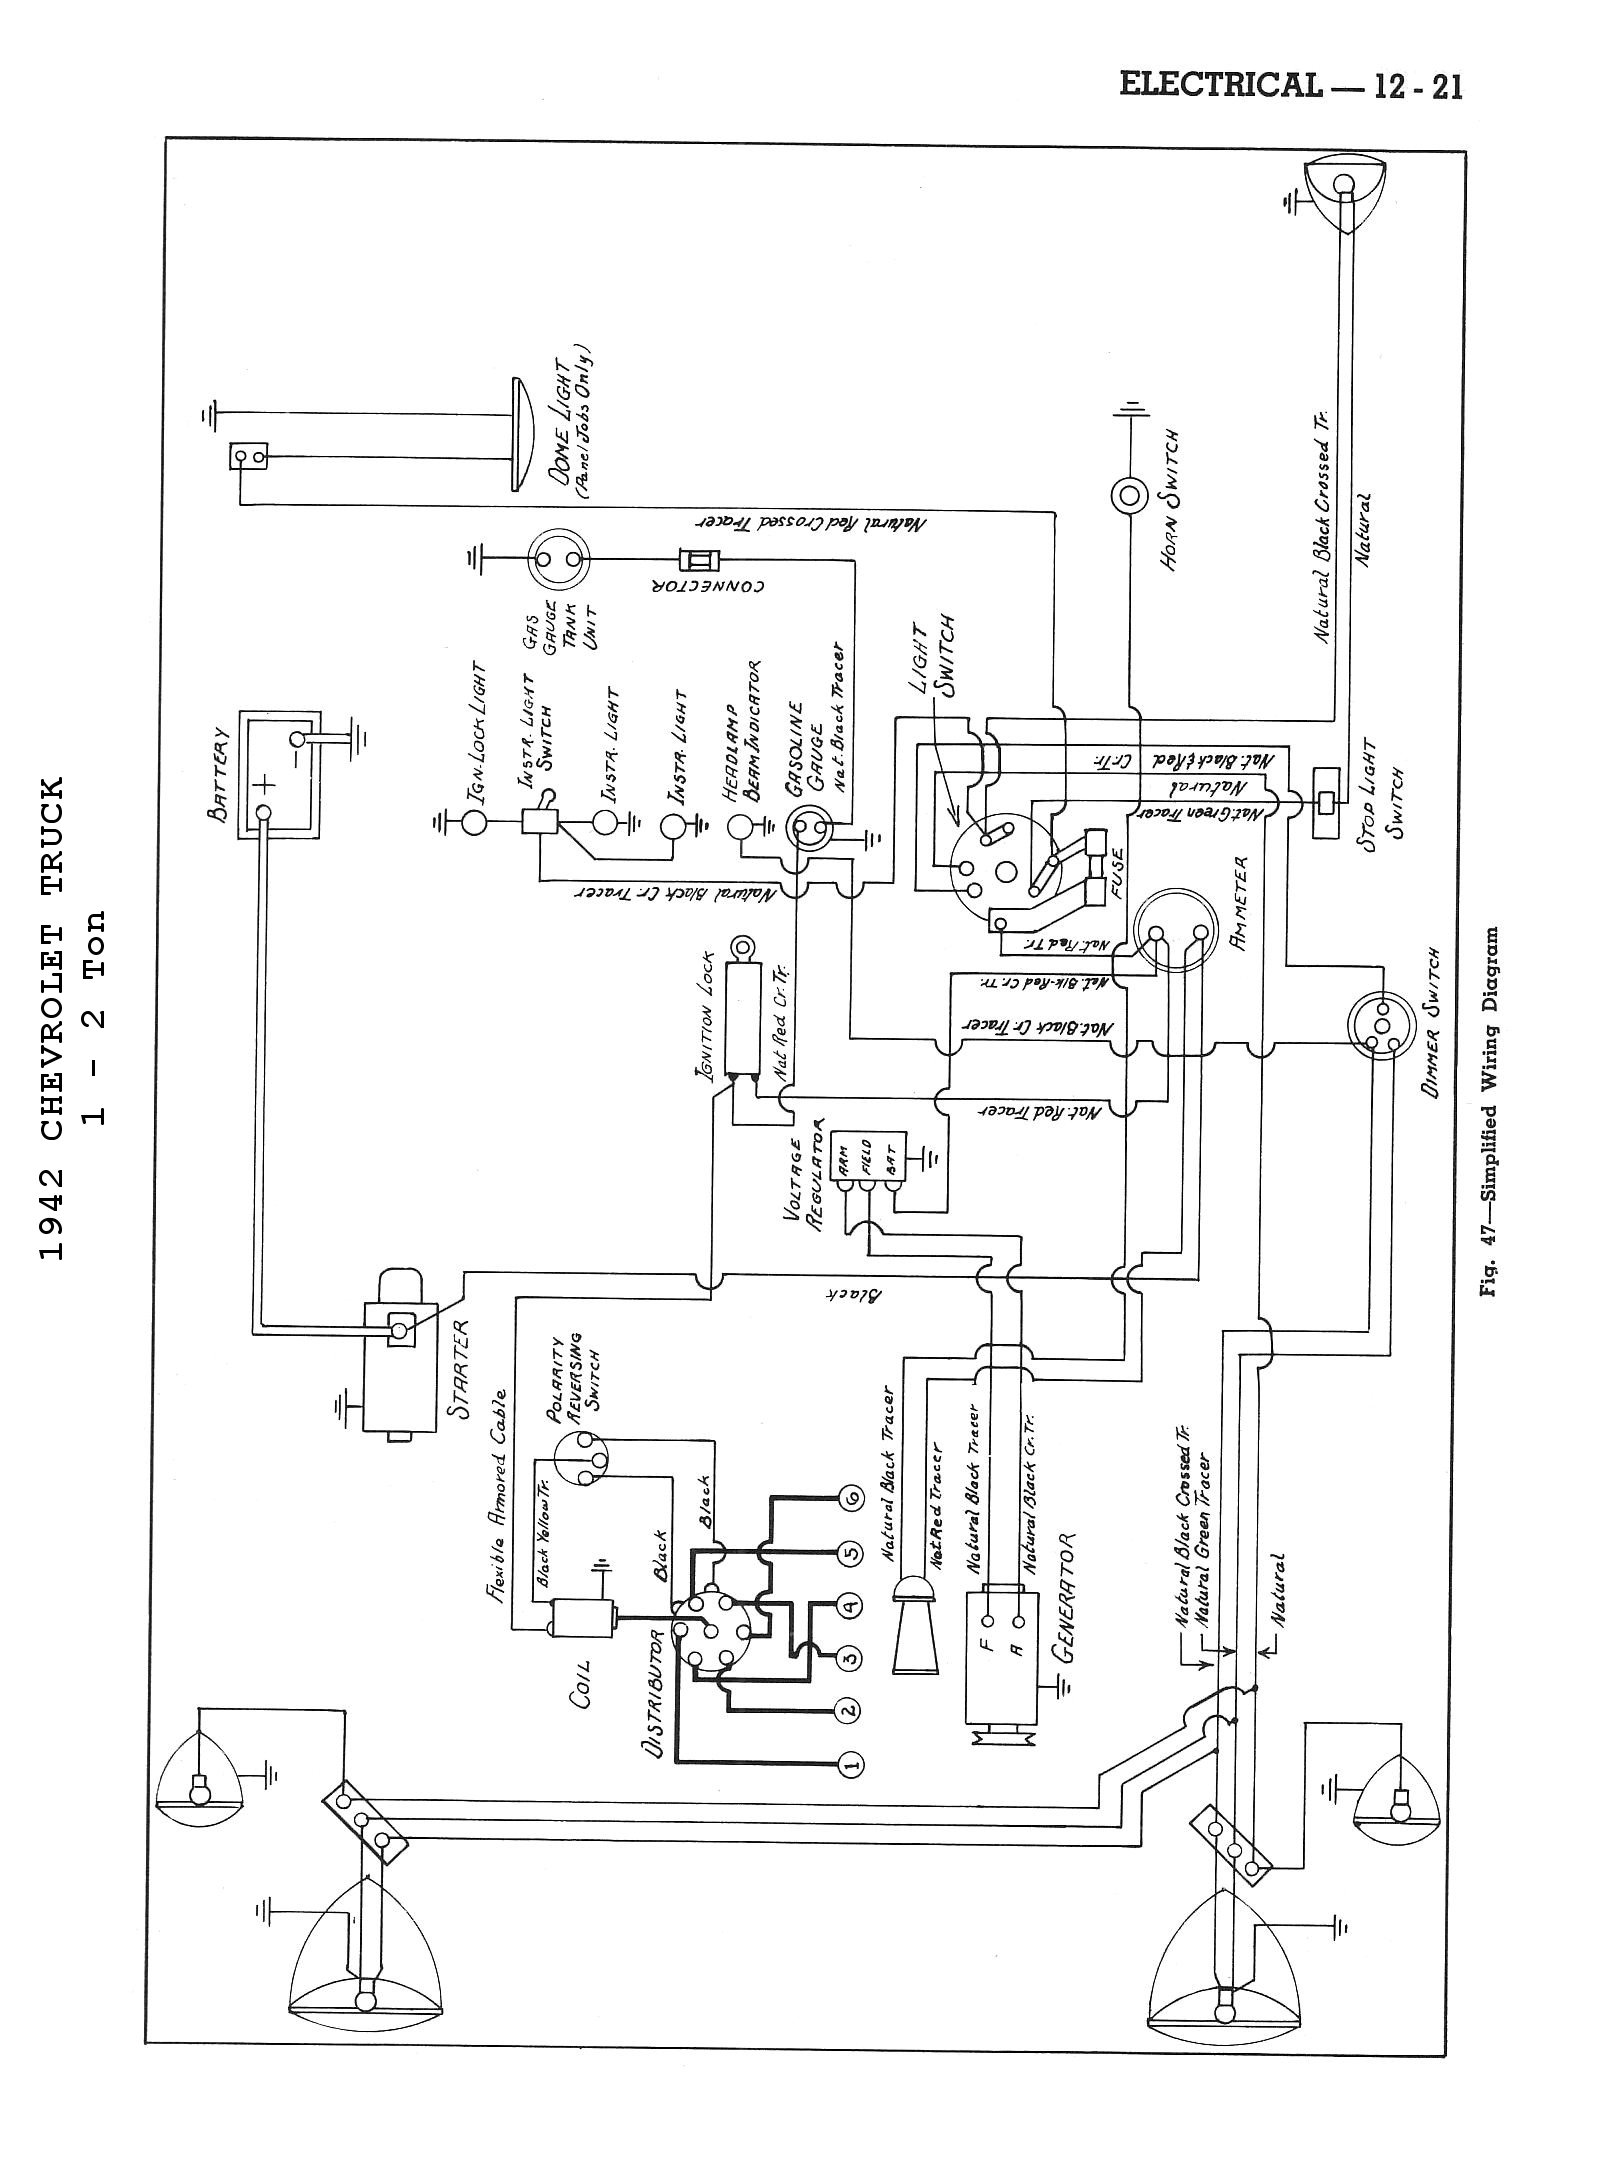 42cm4x2t1221 chevy wiring diagrams 57 chevy truck wiring harness at metegol.co